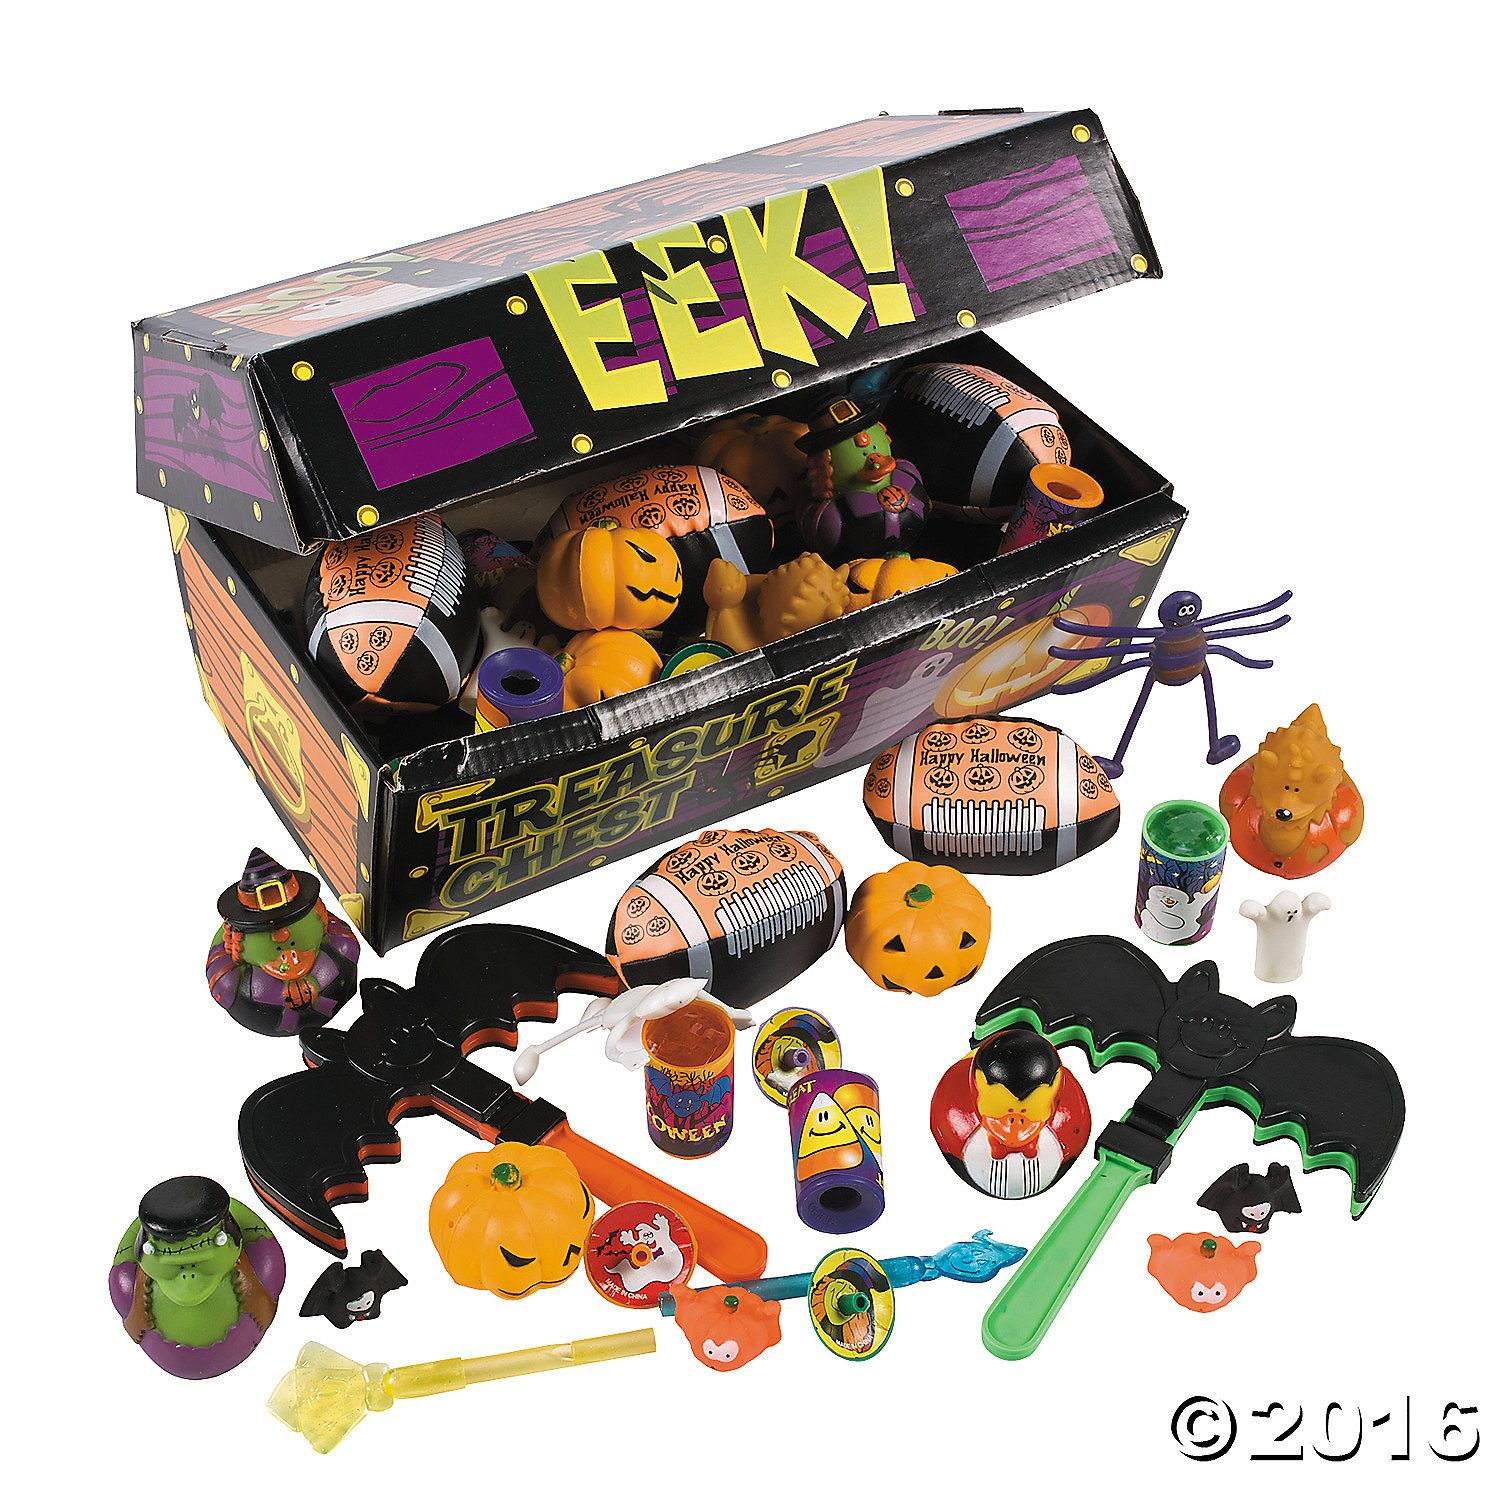 deluxe halloween treasure chest toy assortment